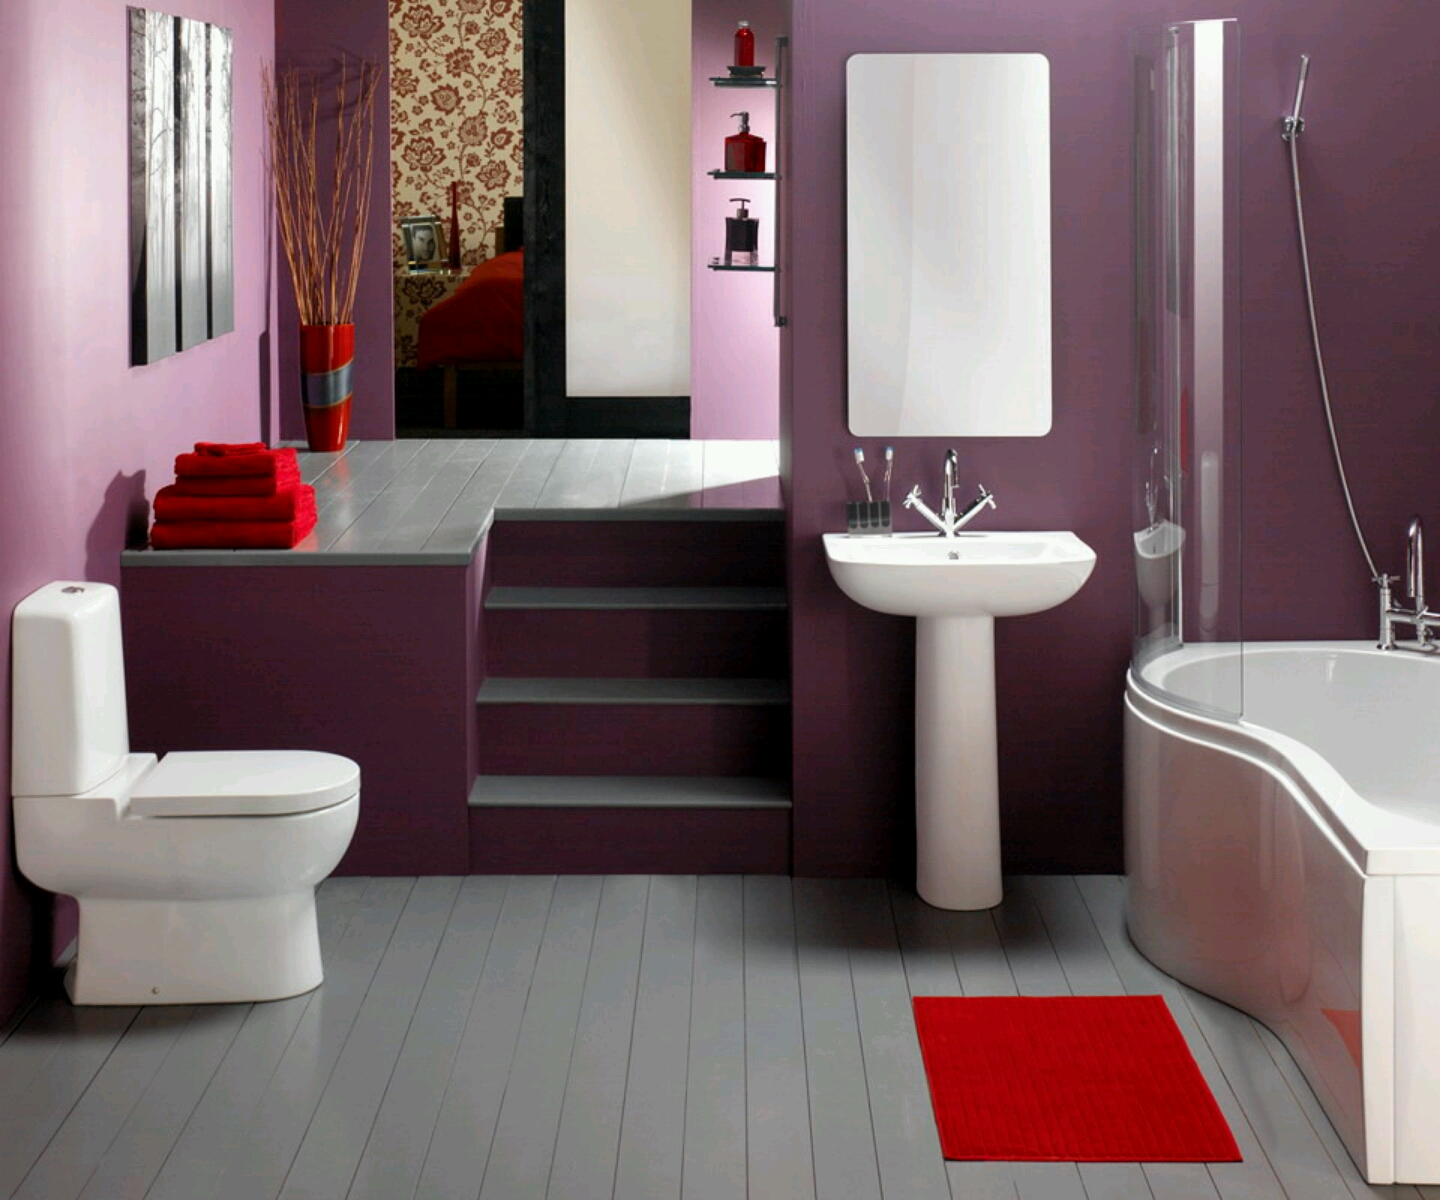 New home designs latest luxury modern bathrooms designs for Bathroom interior decorating ideas